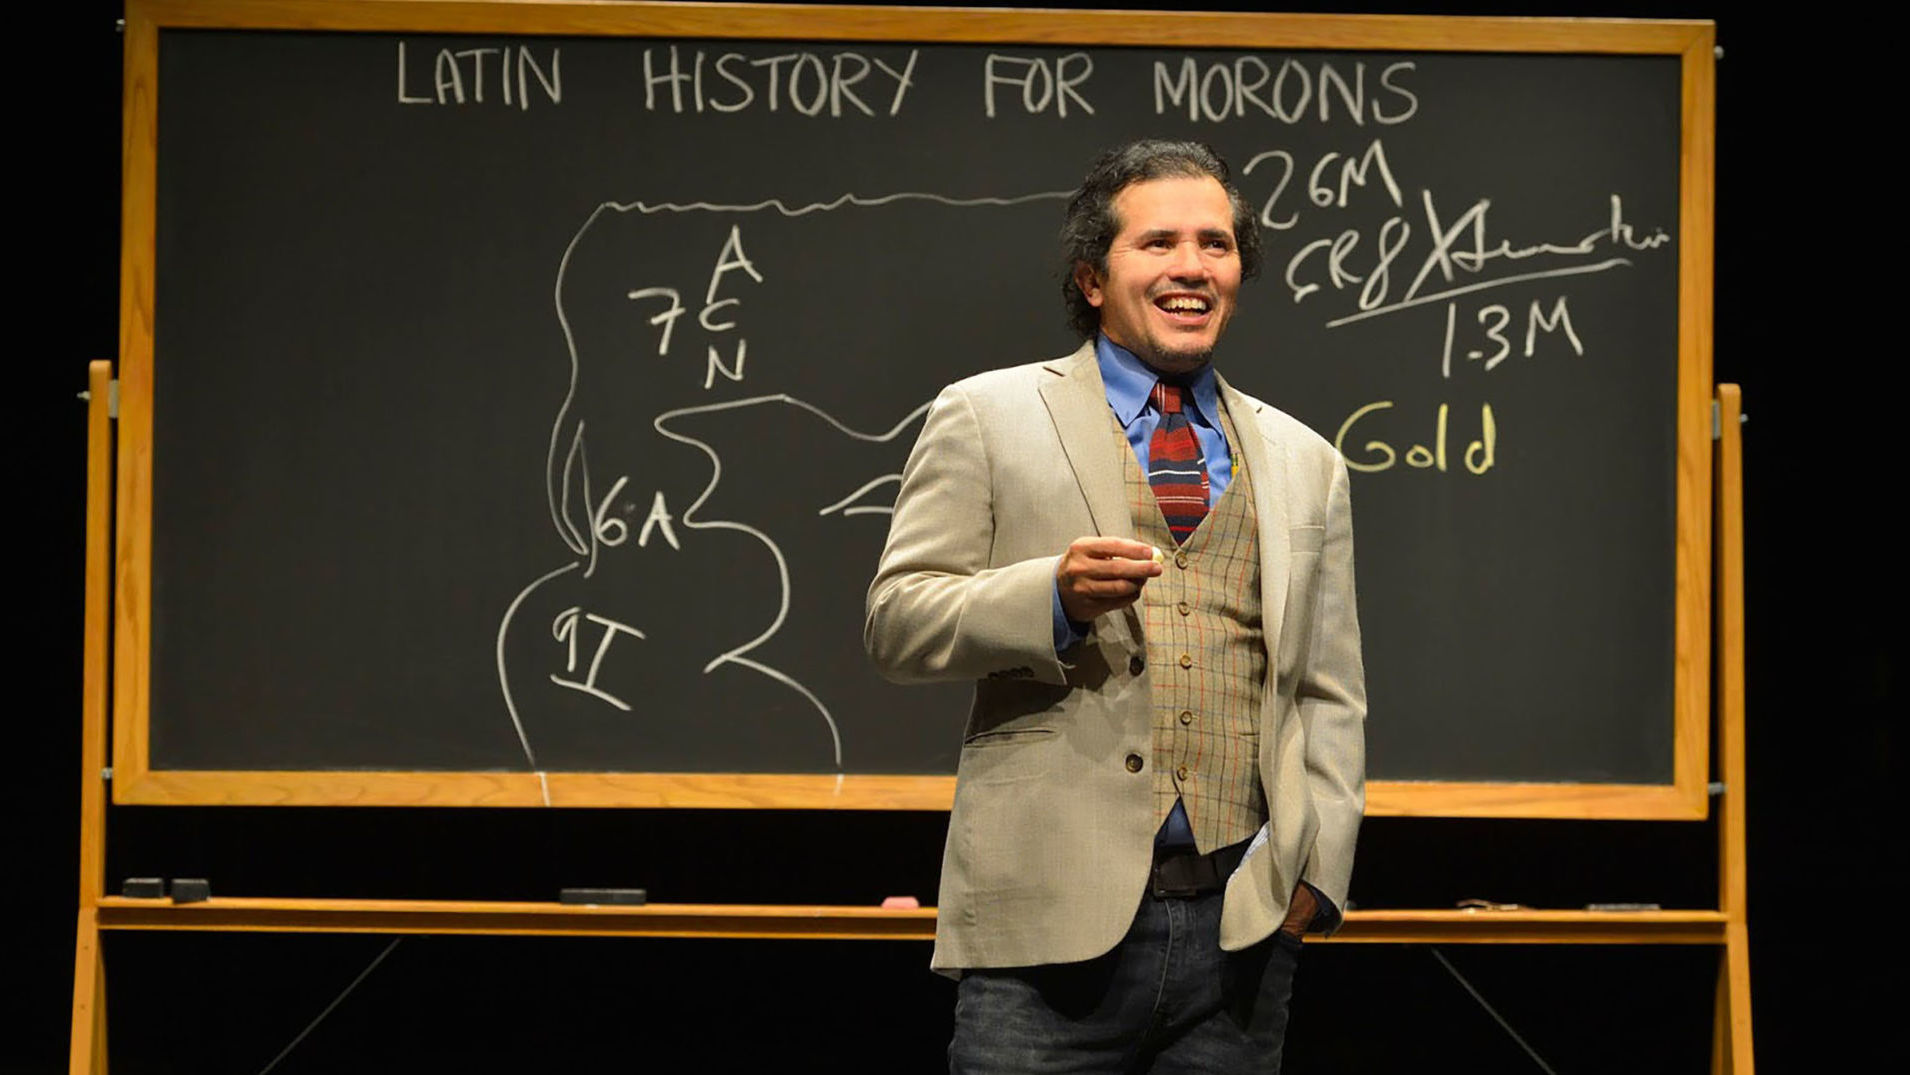 A man in light-colored three piece suit stands in front of a school chalk board and smiles.